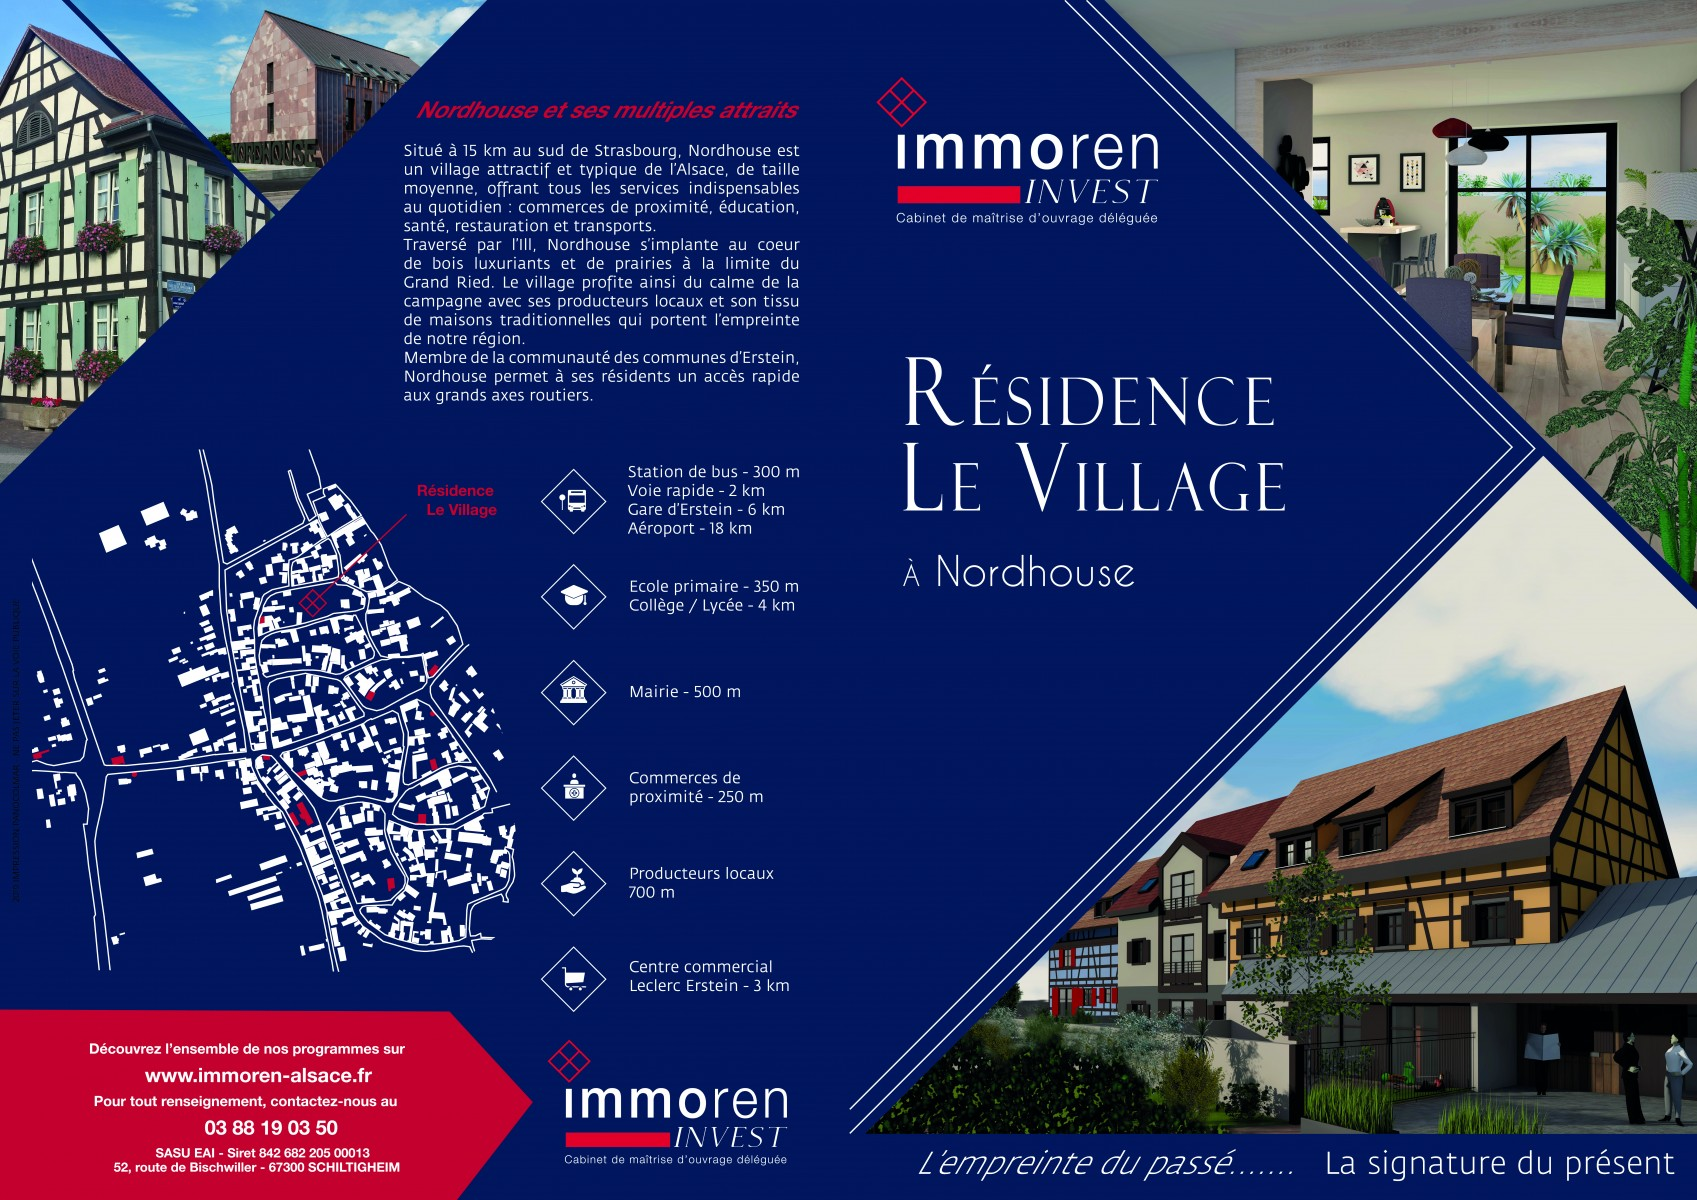 Investisseurs immobilier alsace